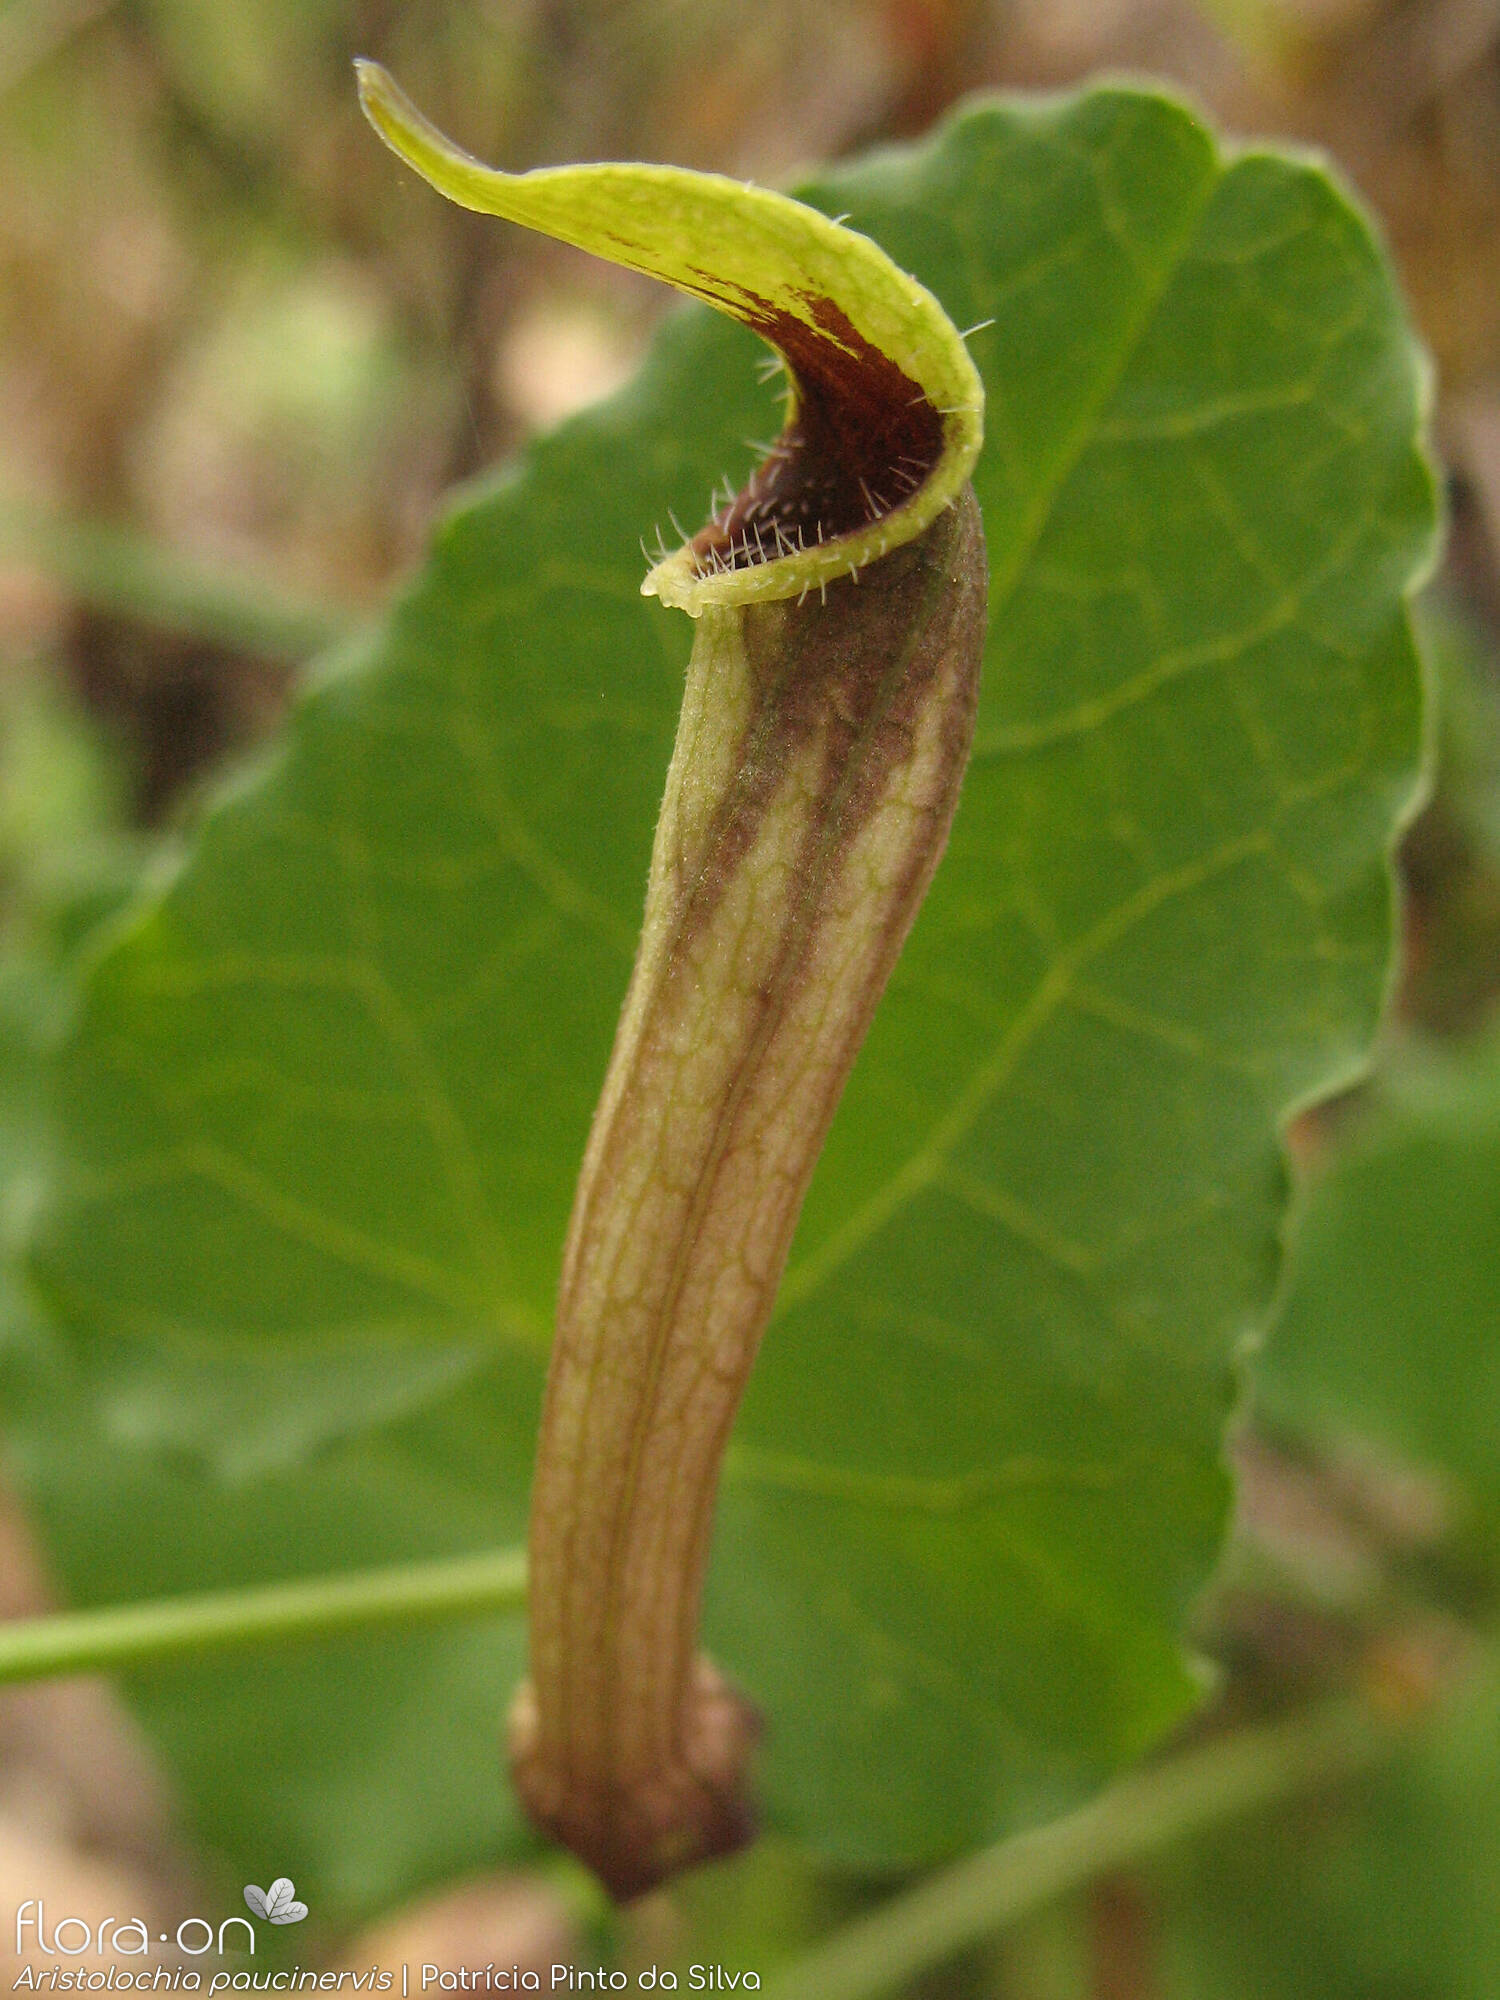 Aristolochia paucinervis - Flor (close-up) | Patrícia Pinto Silva; CC BY-NC 4.0